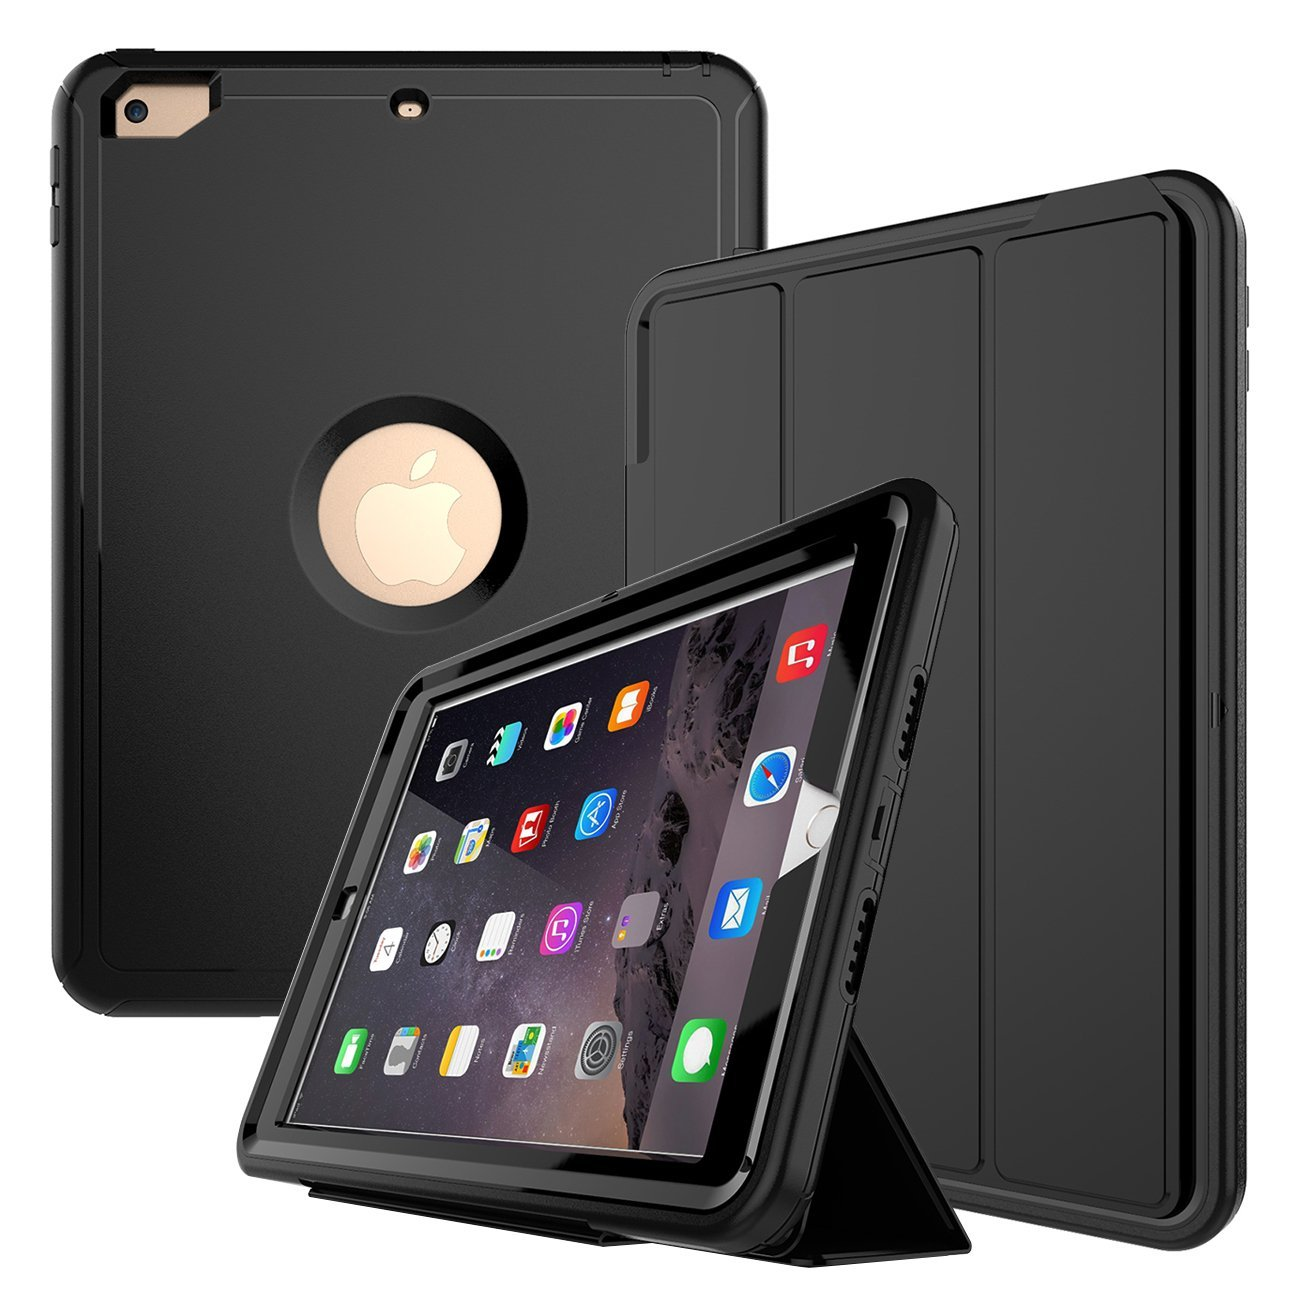 Spencer For Apple iPad Mini 1 2 3 Retina Shockproof Smart Flip Stand Case Folio Magnetic Cover Black